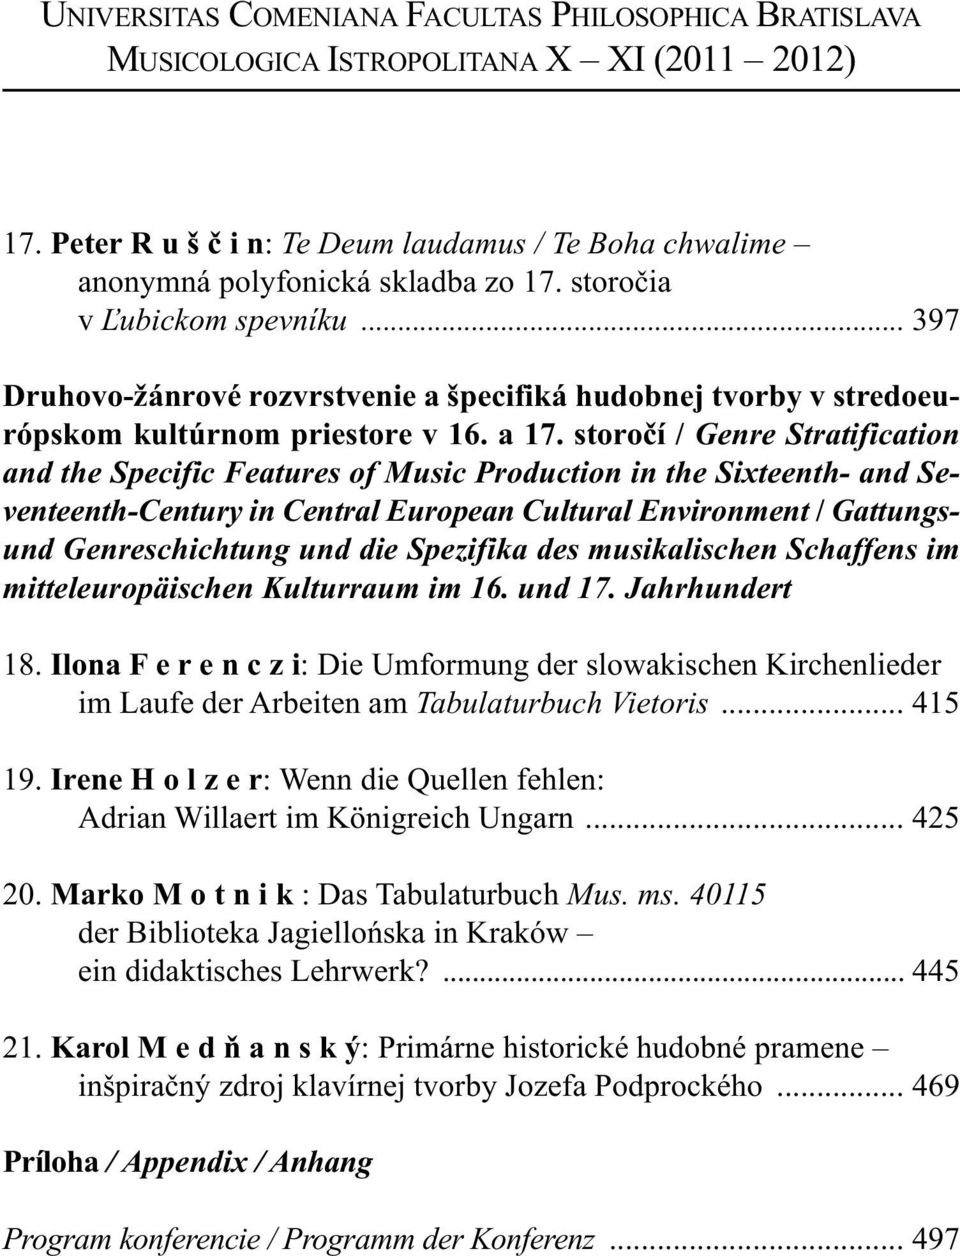 storočí / Genre Stratification and the Specific Features of Music Production in the Sixteenth- and Seventeenth-Century in Central European Cultural Environment / Gattungsund Genreschichtung und die